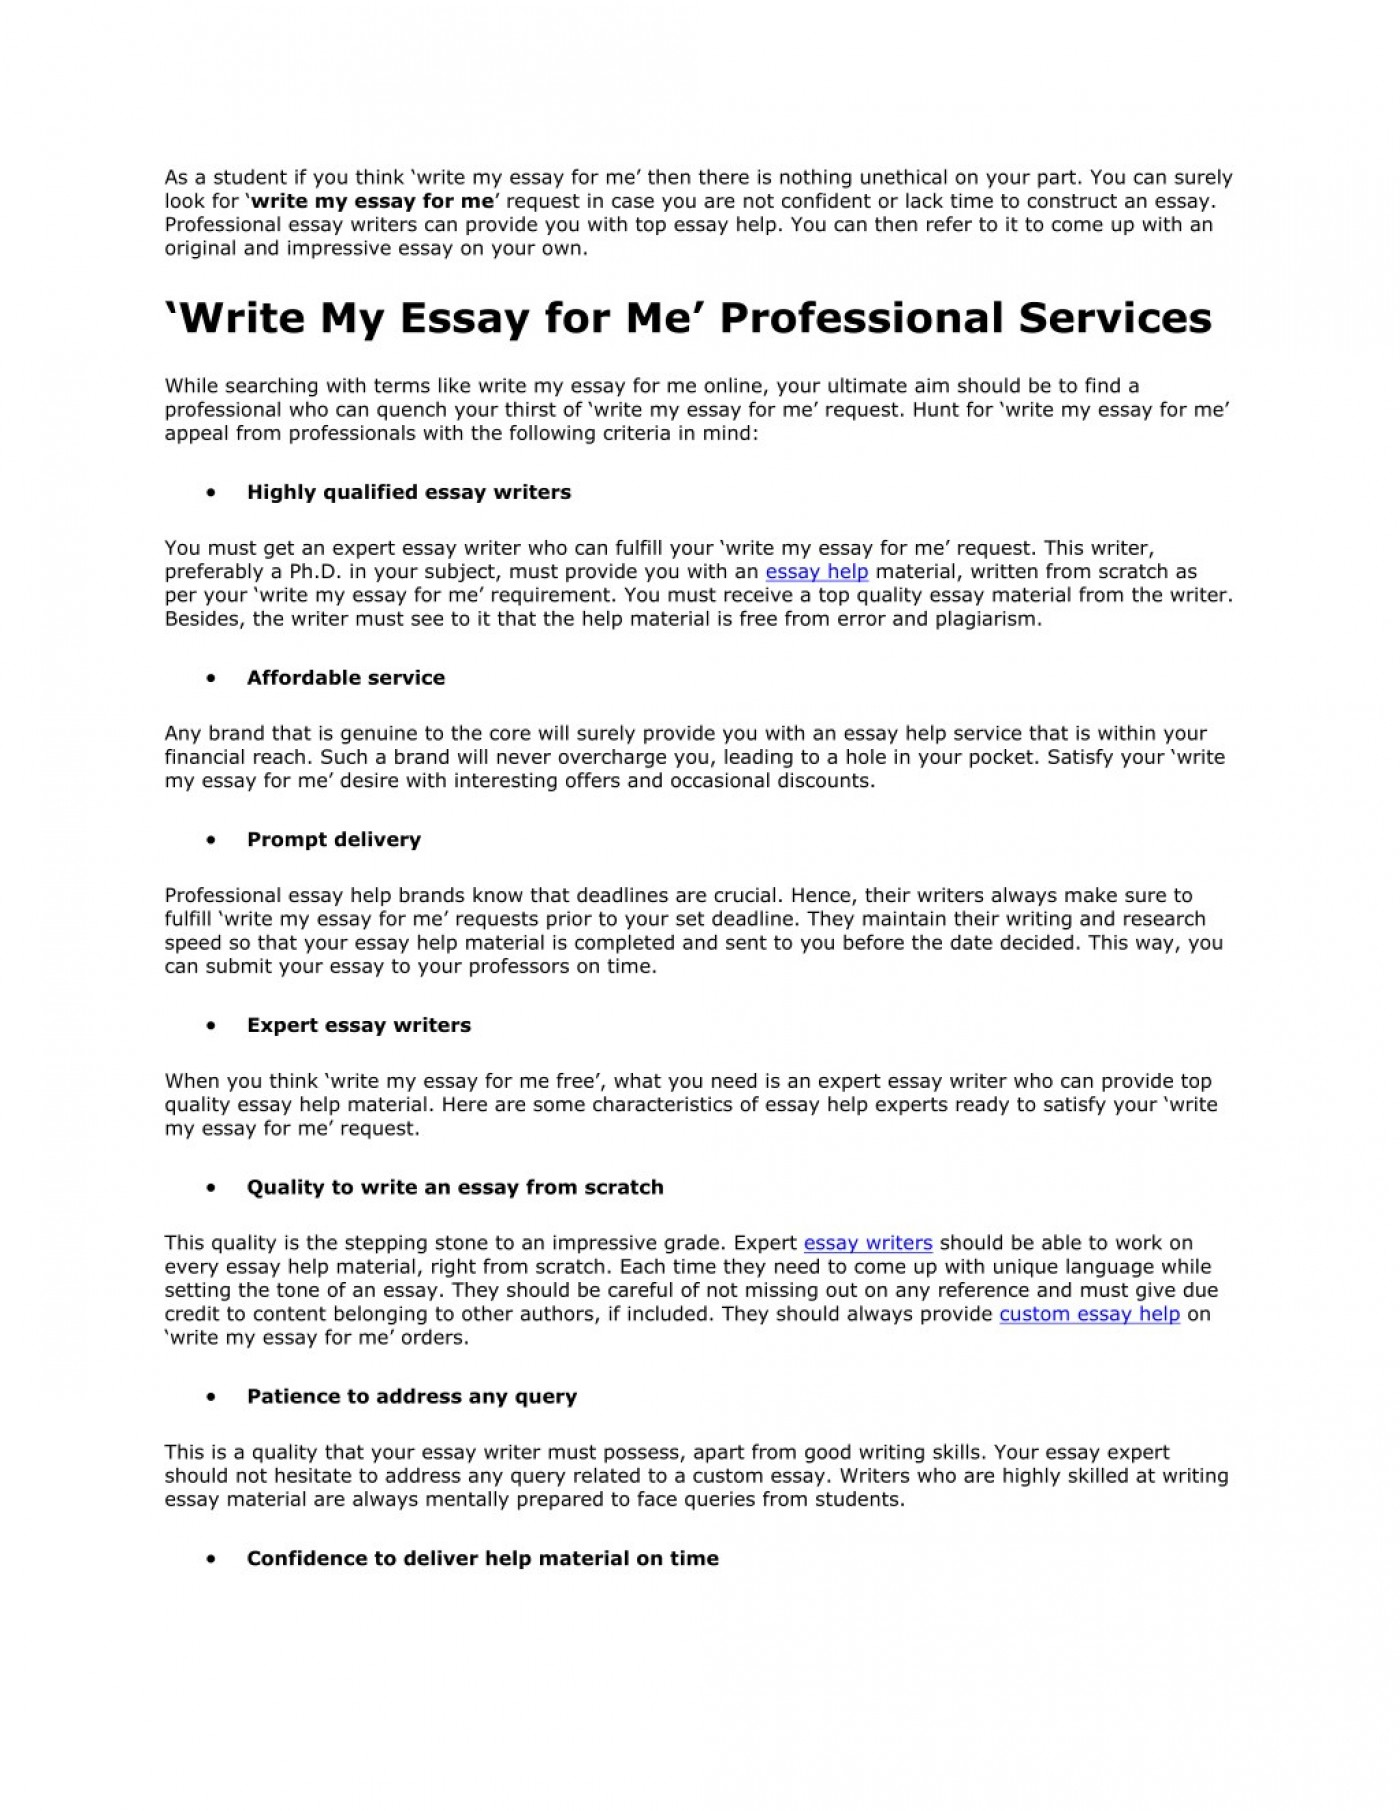 006 Essay Example Write For Me As Student If You Think My Amazing Discount Code Online Free 1400